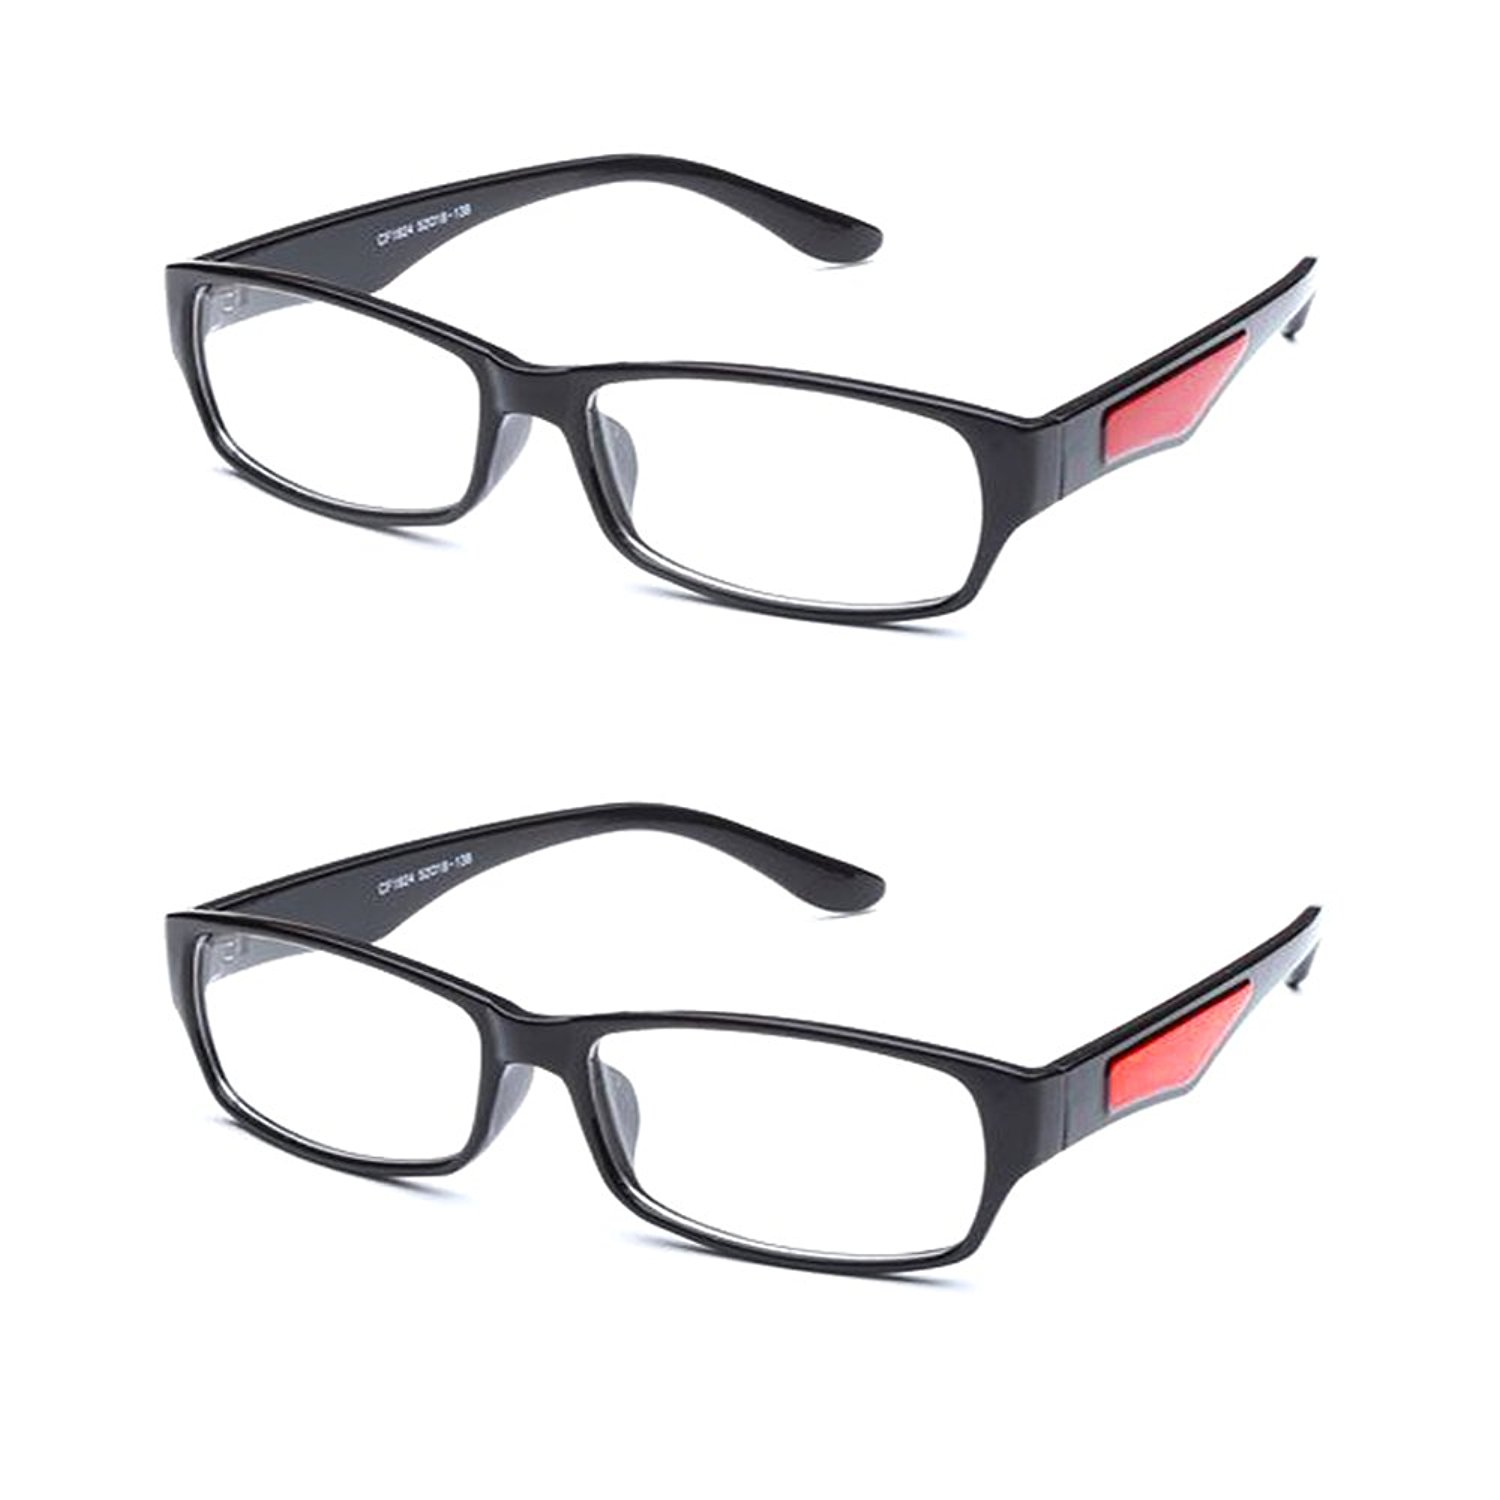 Newbee Fashion - Casual Simple Squared Durable Frames Temple Design Clear Eye Glasses